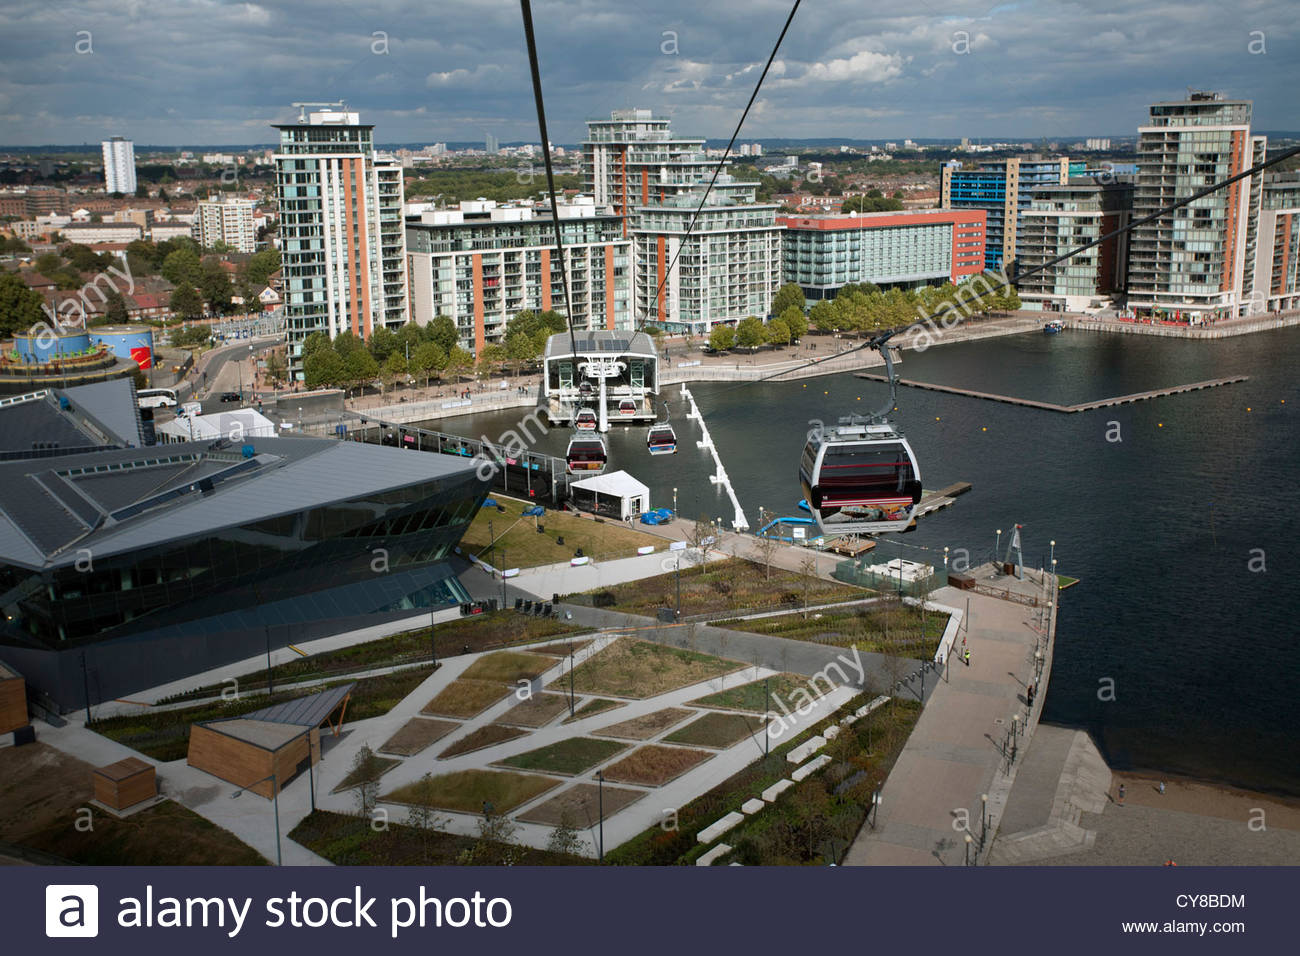 Looking towards the Royal Victoria Dock and the Emirates Air Line station, London - Stock Image